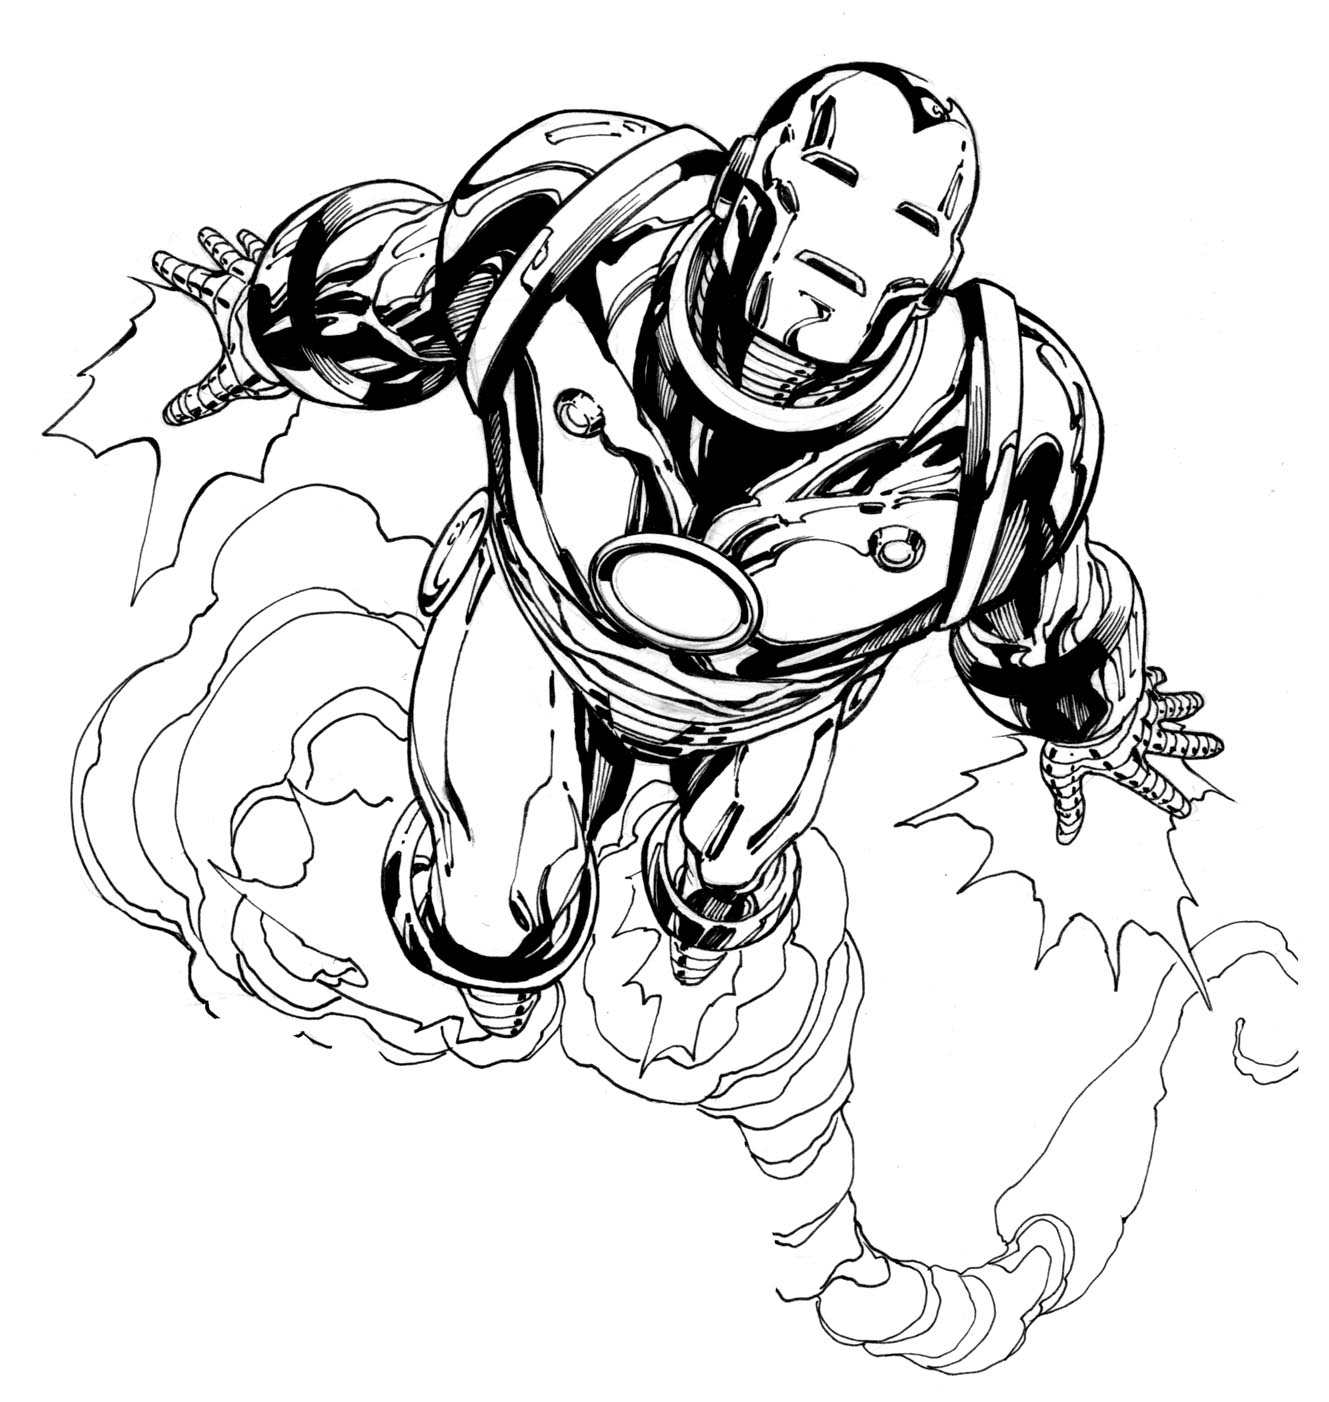 coloring pages of iron man iron man to color for children iron man kids coloring pages coloring of pages man iron